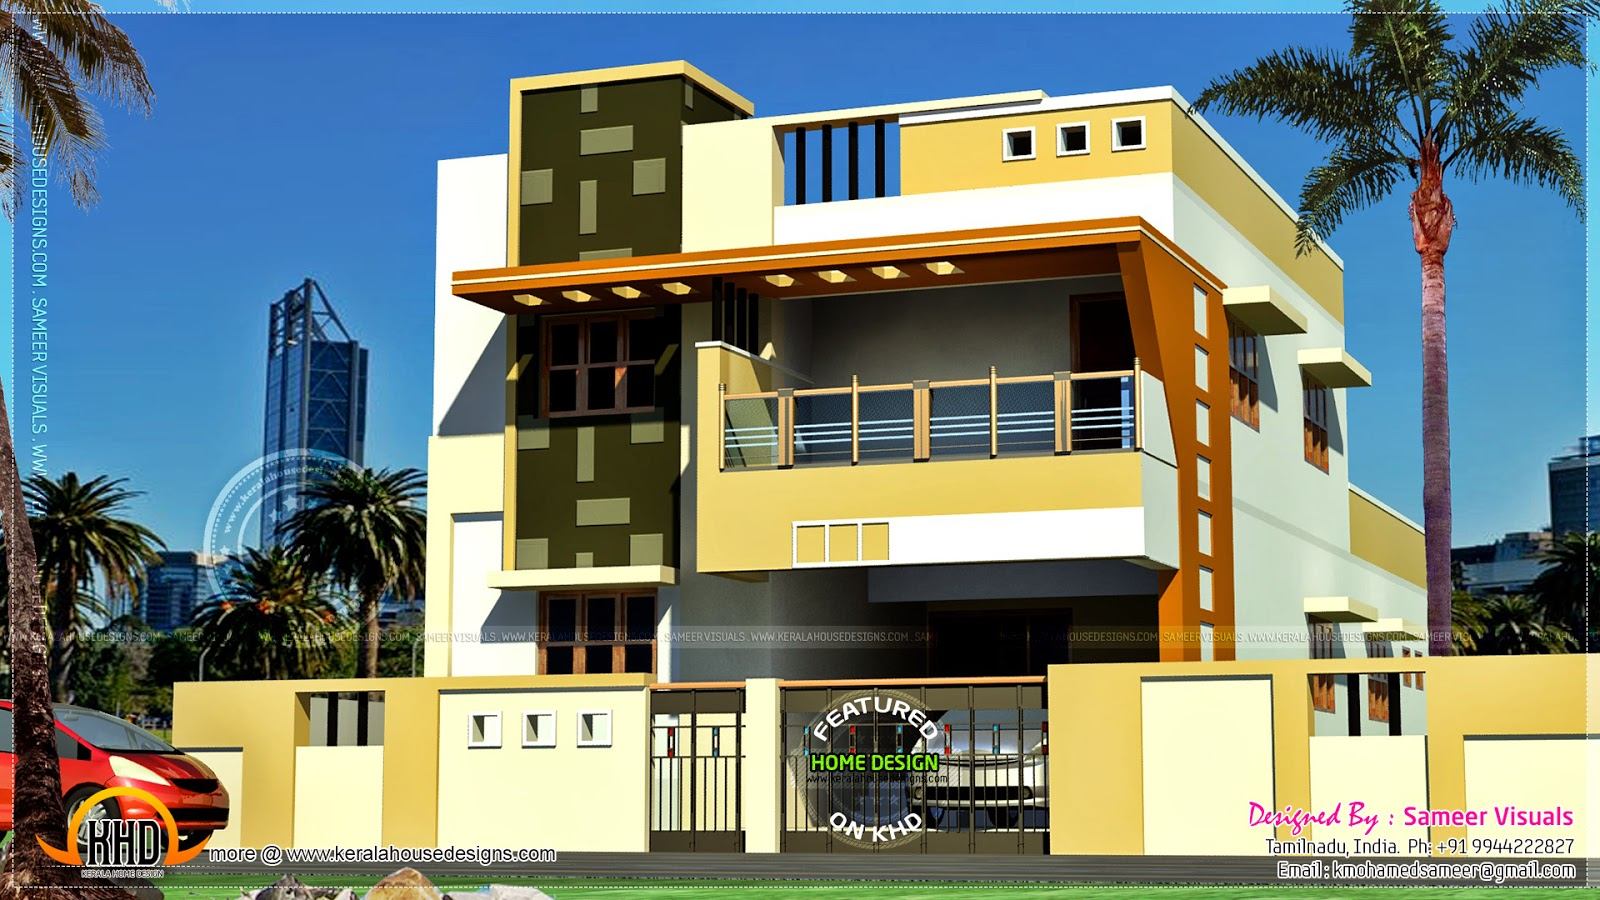 Modern south indian house design kerala home design and for Home outer colour design